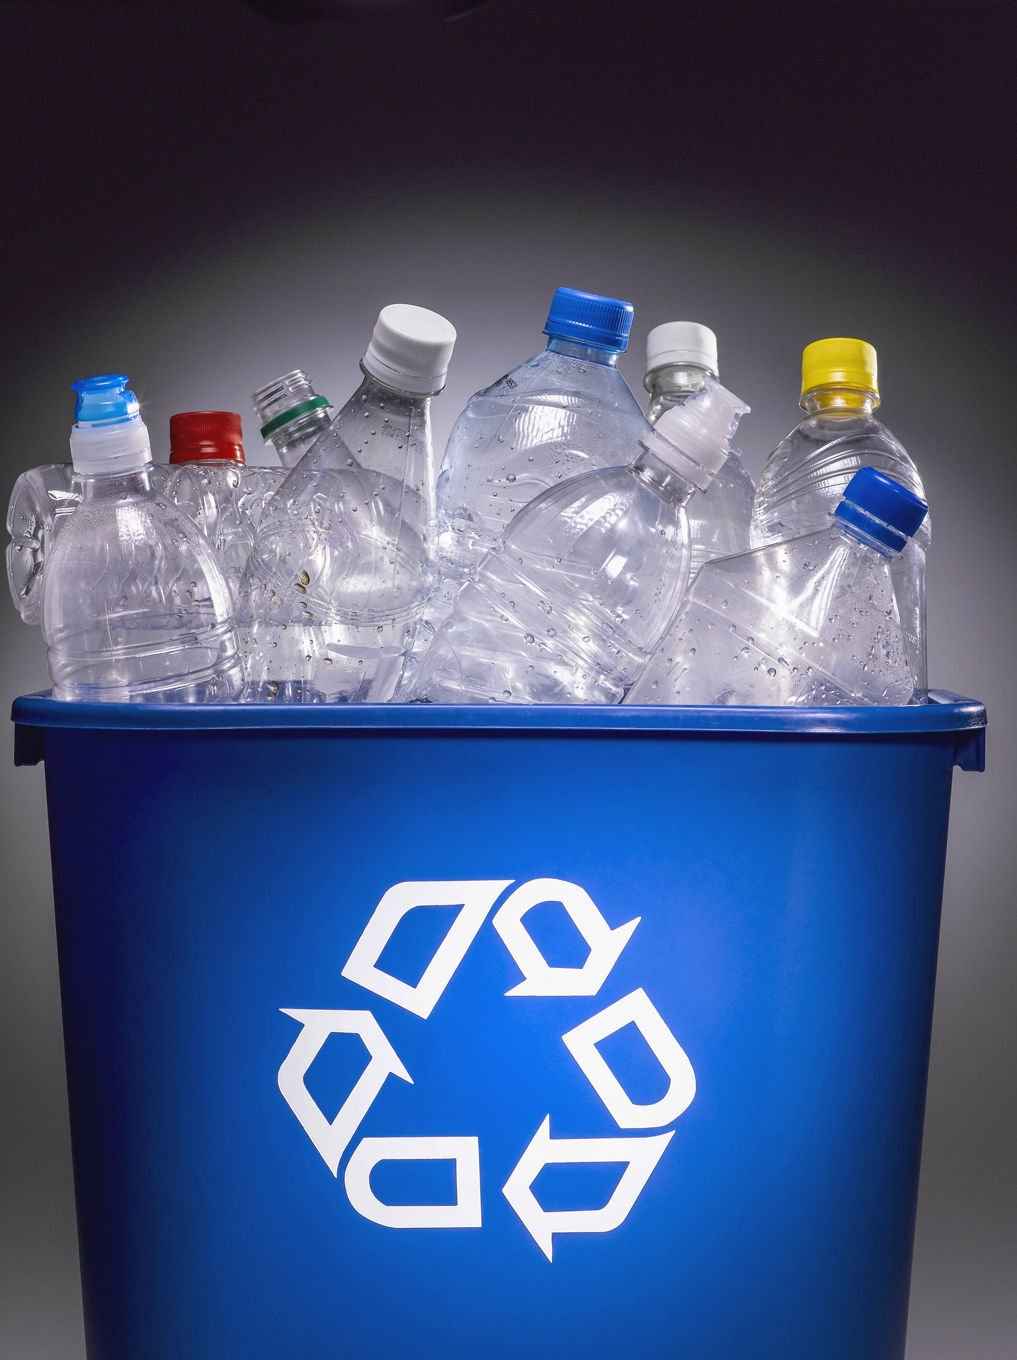 Find Ways To Reduce Use Of  Recycle Plastic In The Home